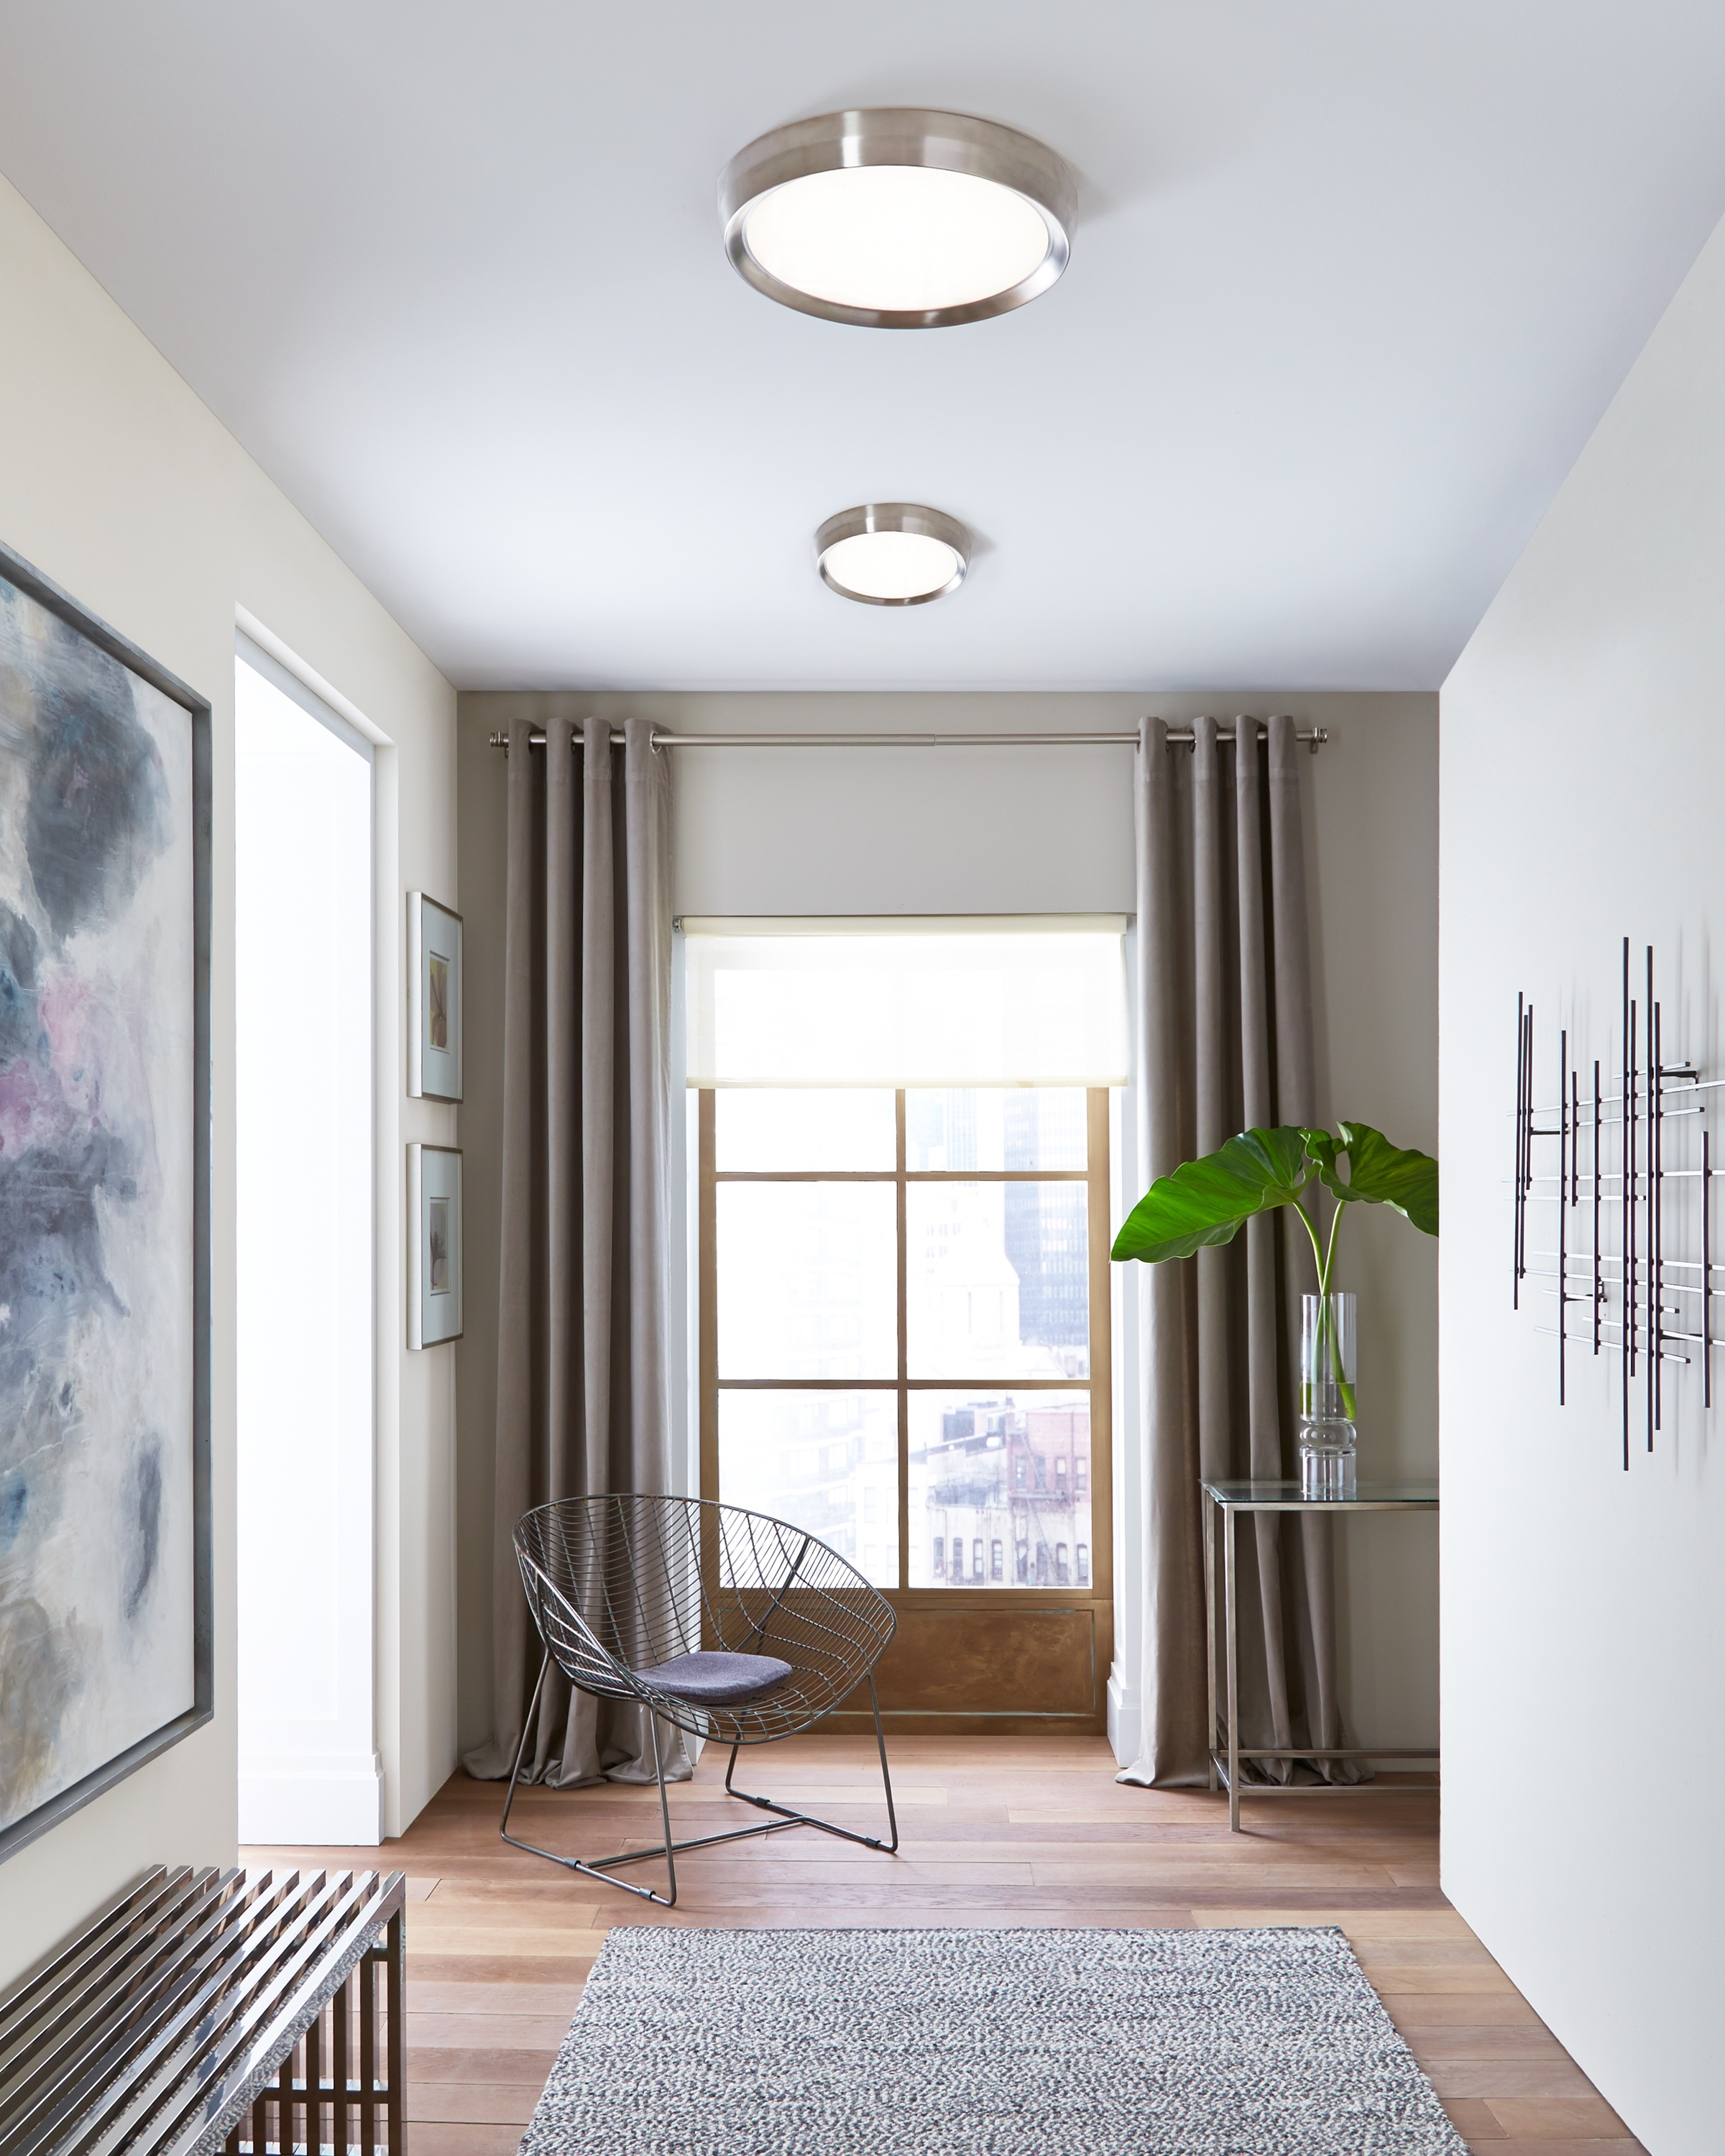 This Tech Lighting flush mount illuminates and adds to the decor of this foyer.